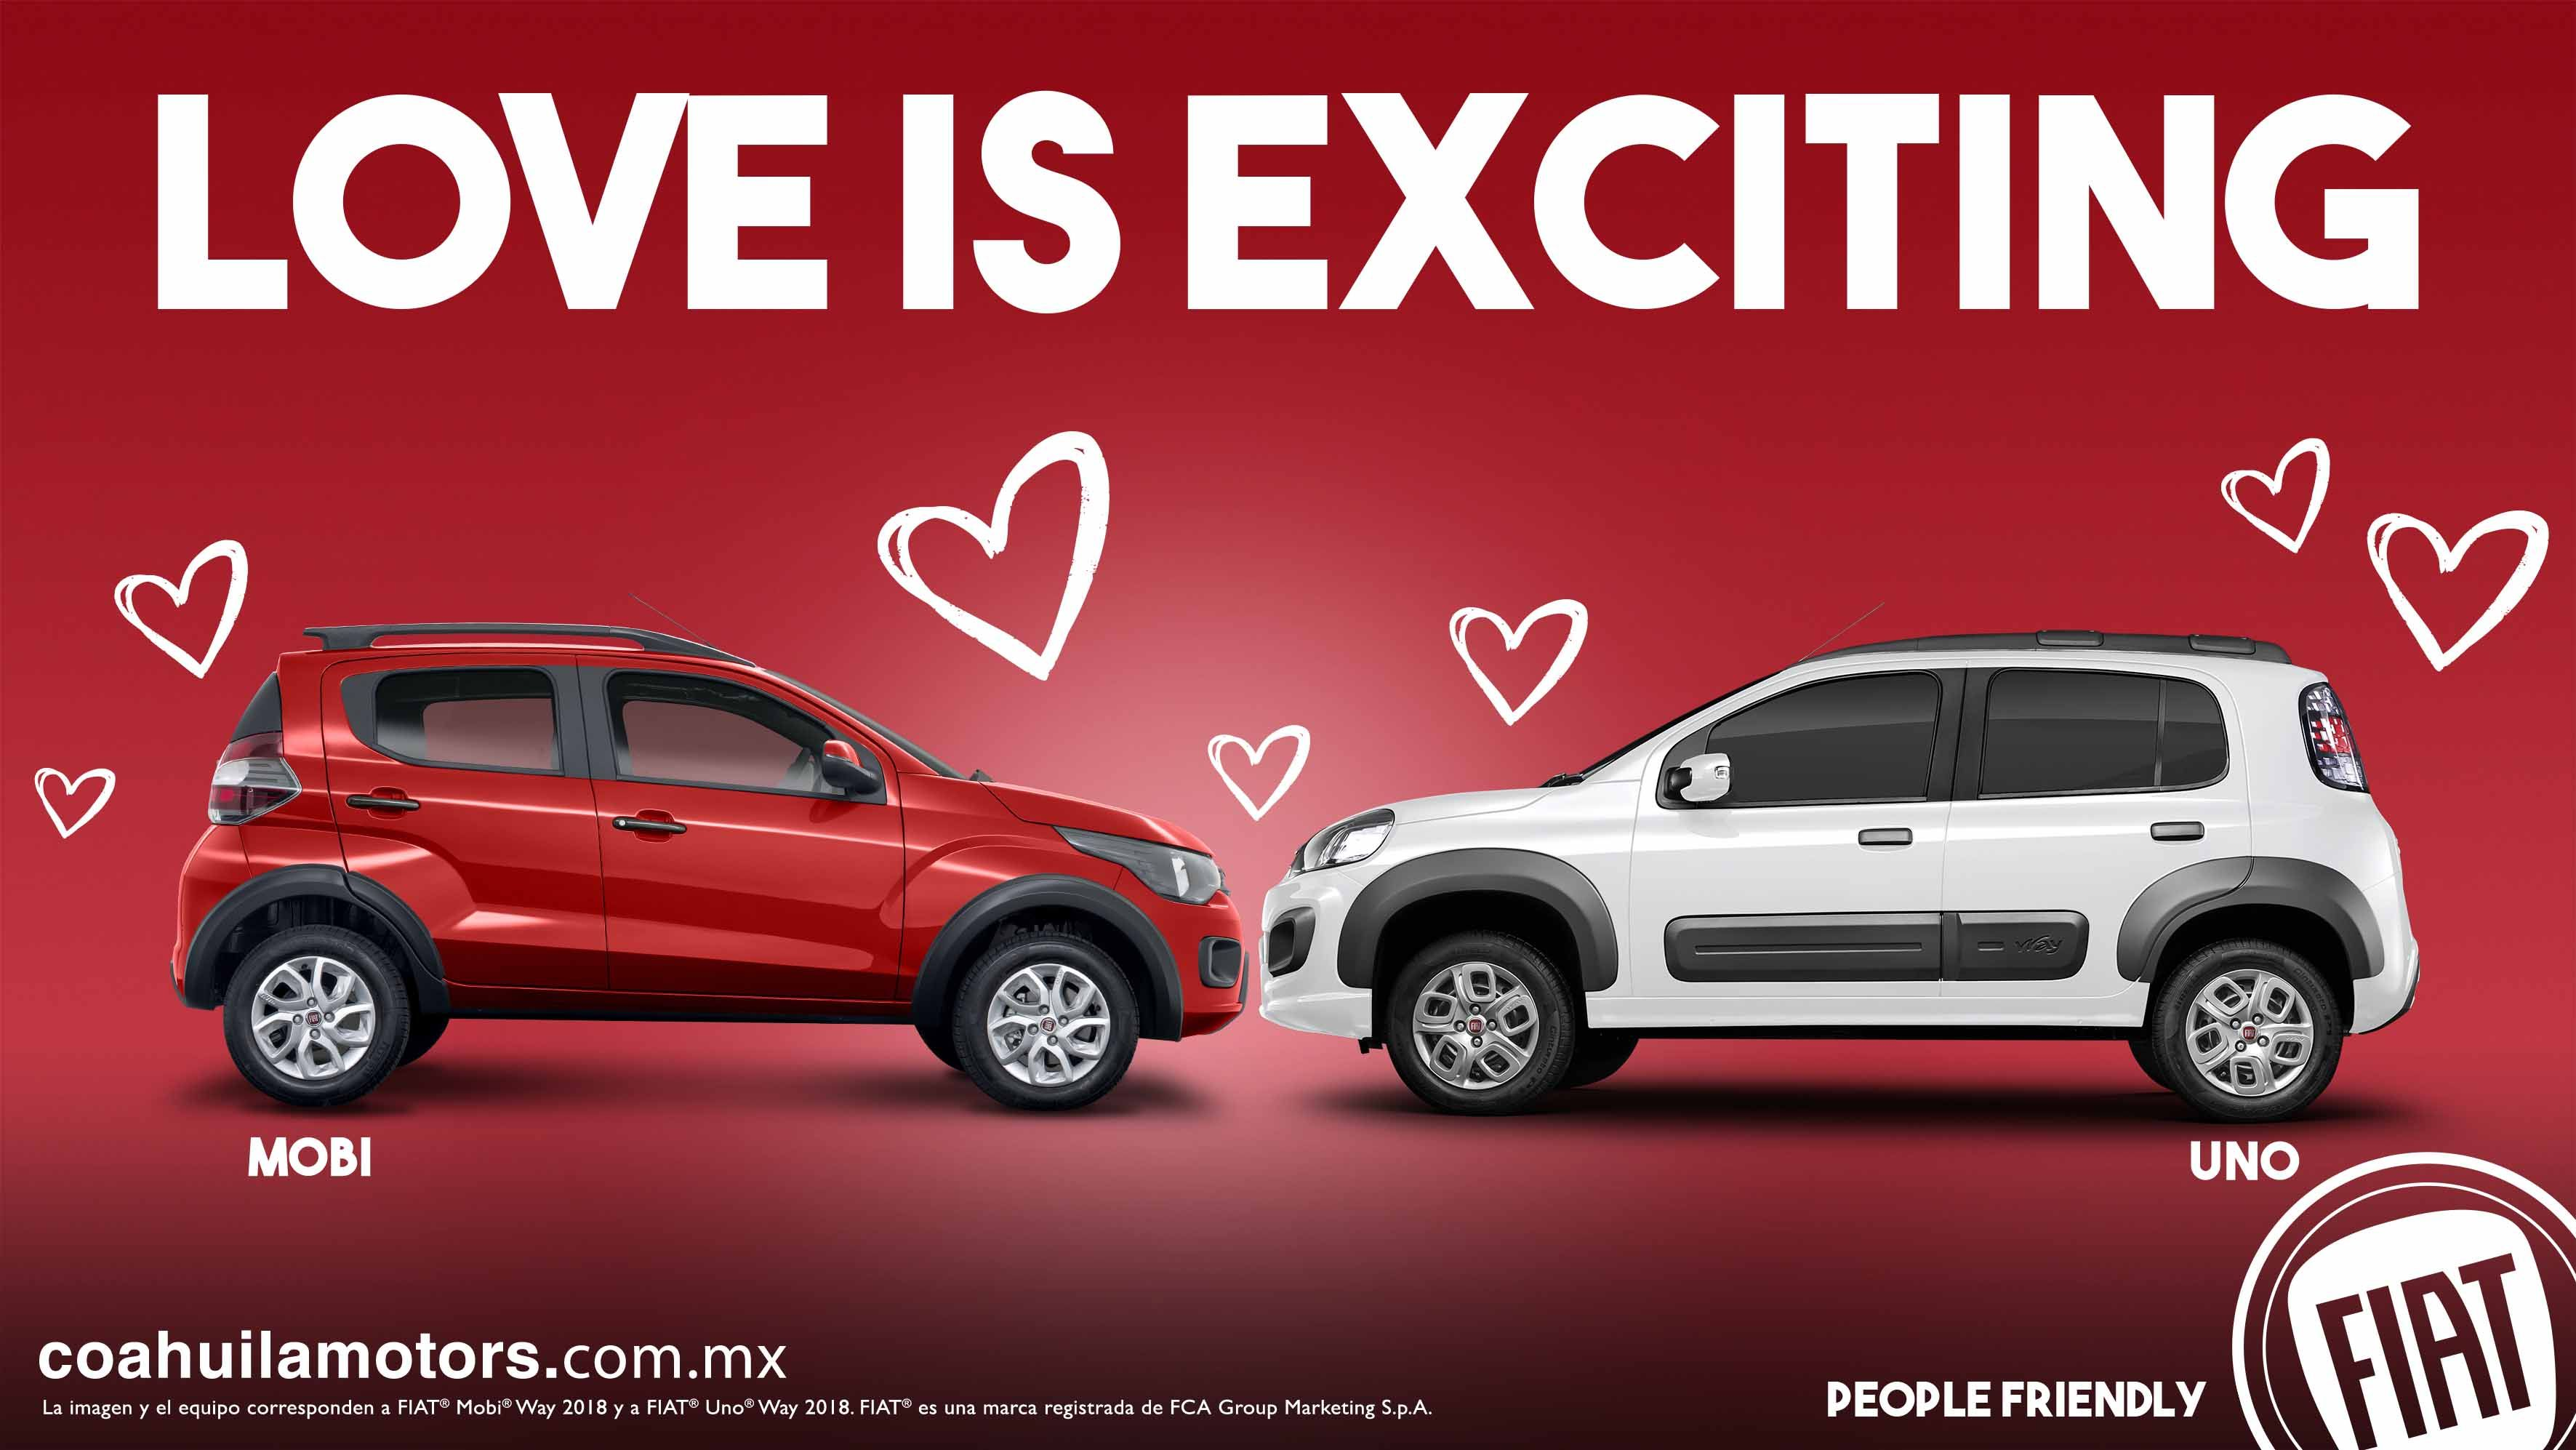 ¡Este mes Love is Exciting! Love